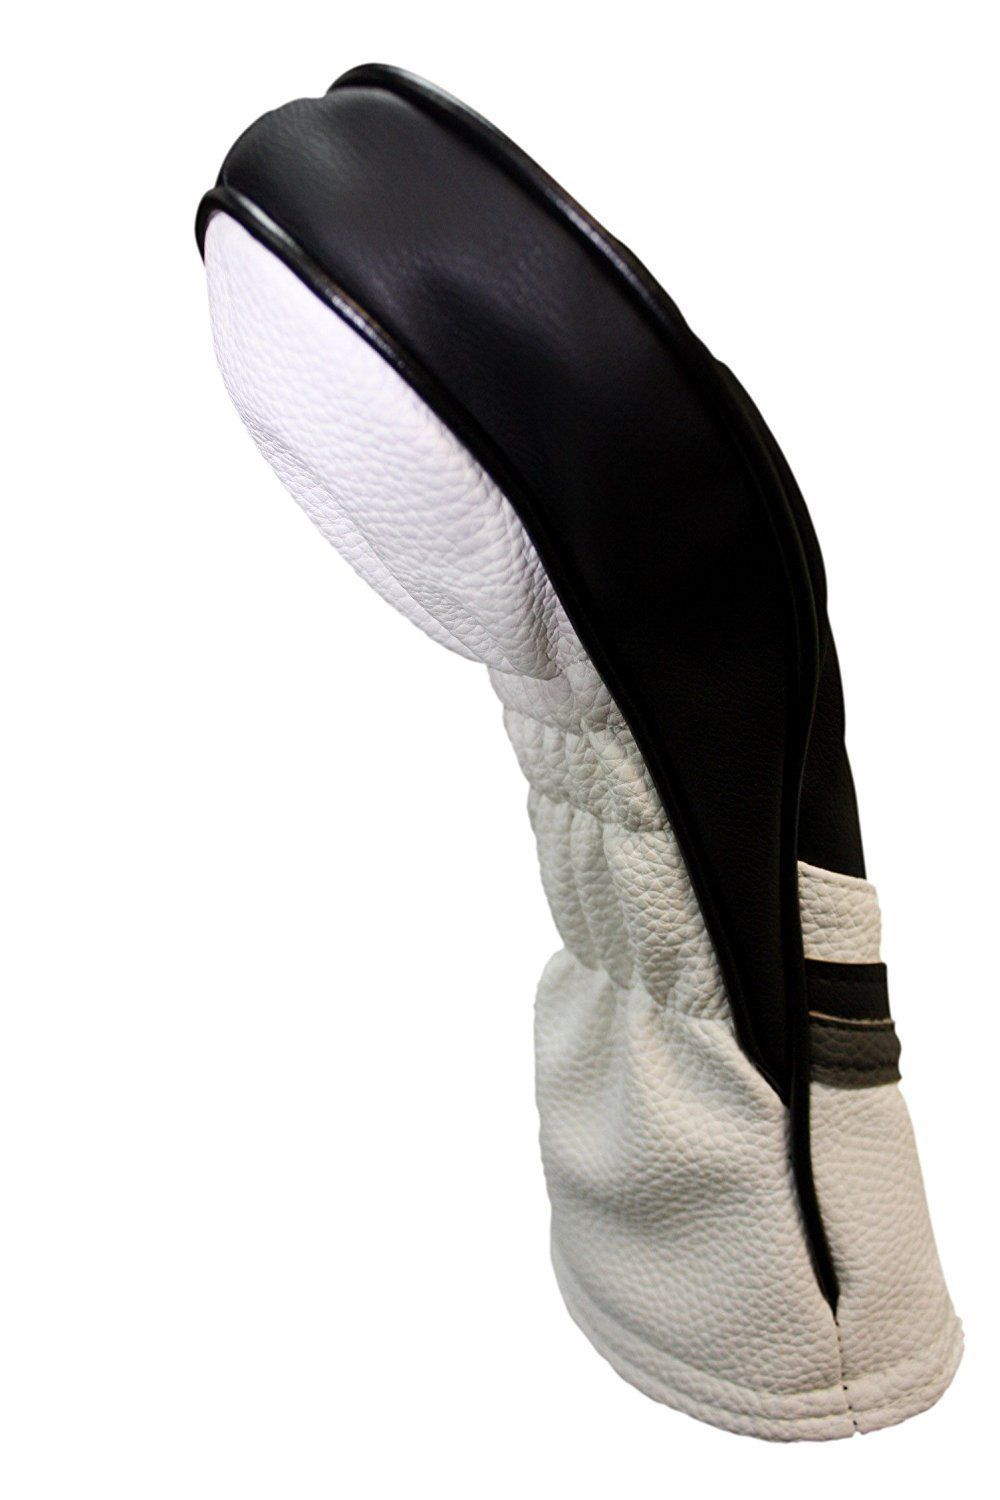 Majek Golf Headcover Black and White Leather Style #4 Hybrid Head Cover